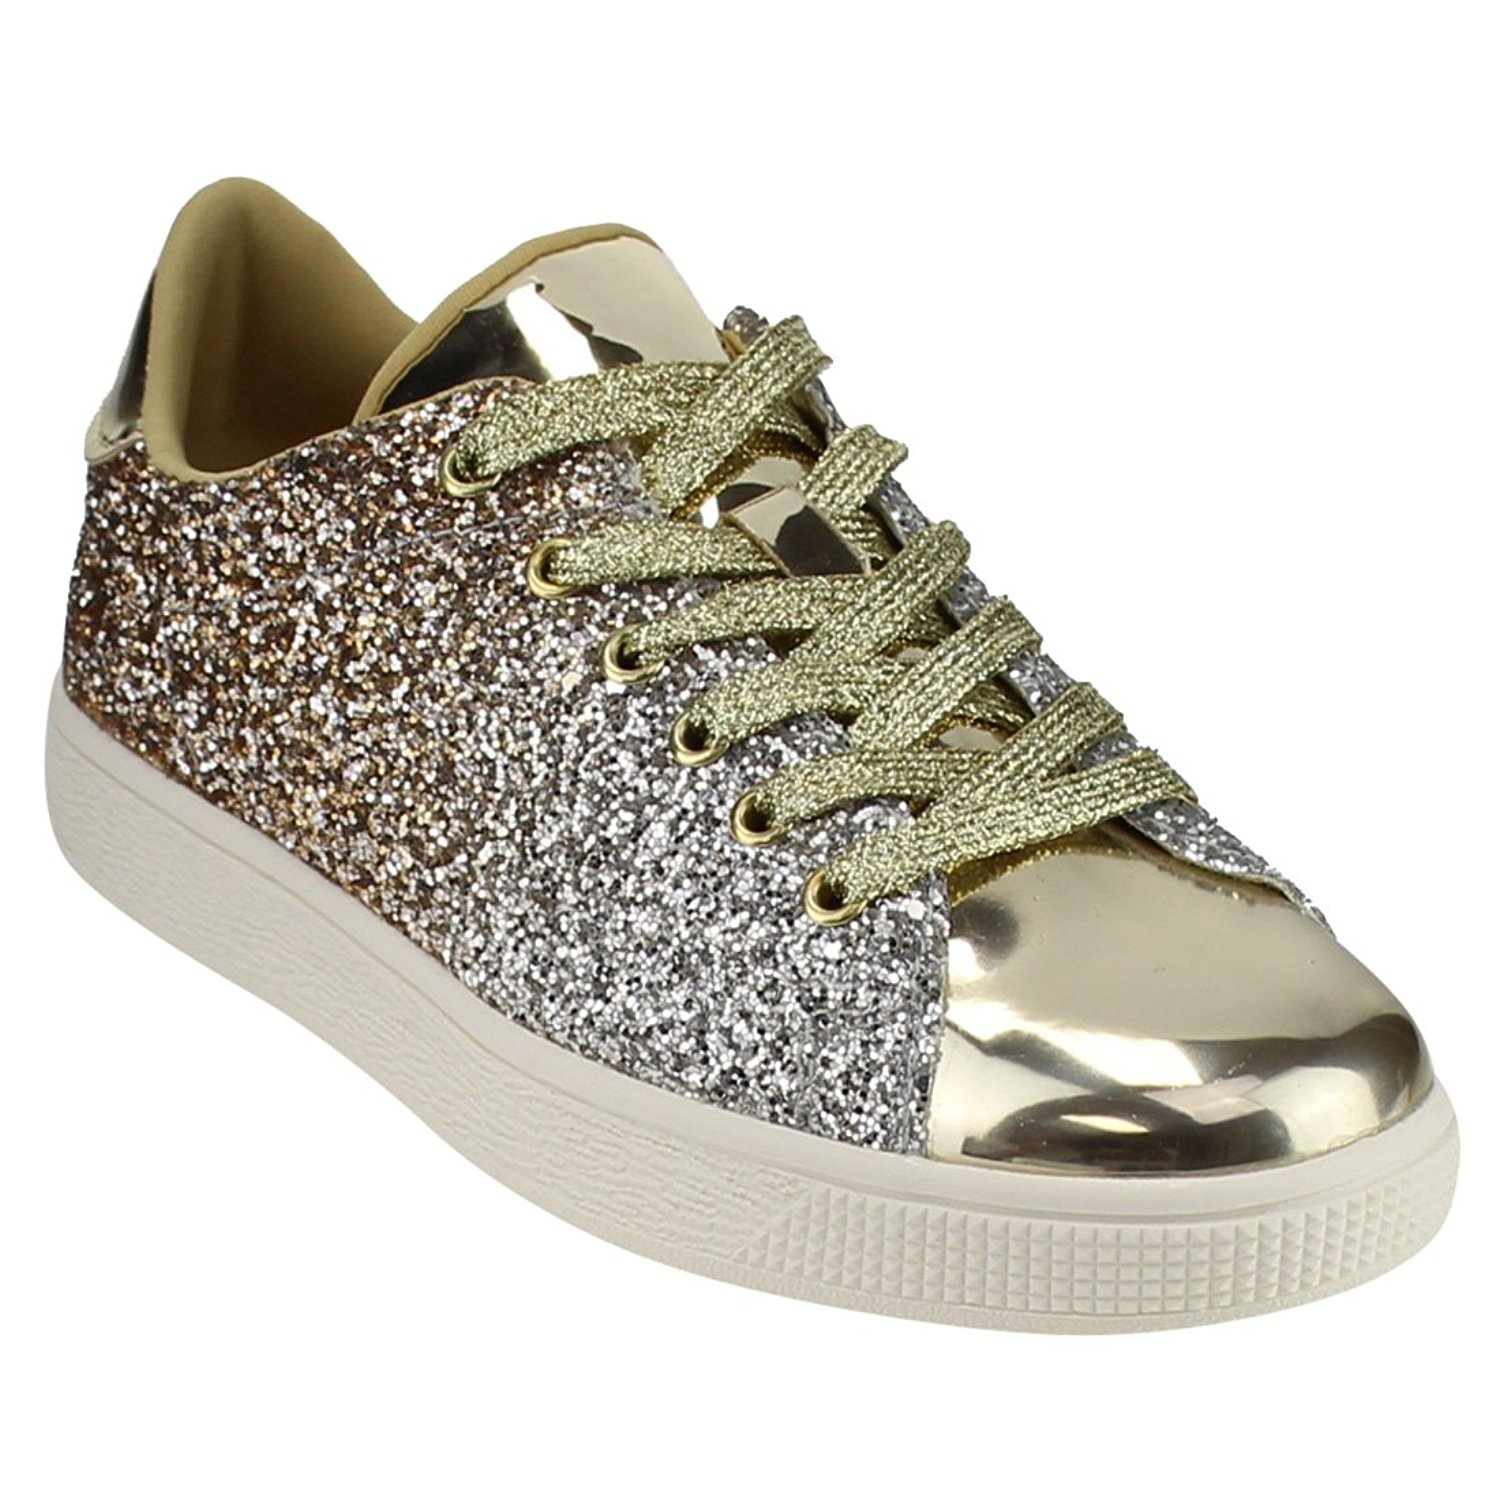 Forever Link Women Fashion Light Weight Glitter Metallic Leatherette Quilted Lace Up Shoe Lace Up Low Top Stylish Sneaker (6, Gold Glitter-1)